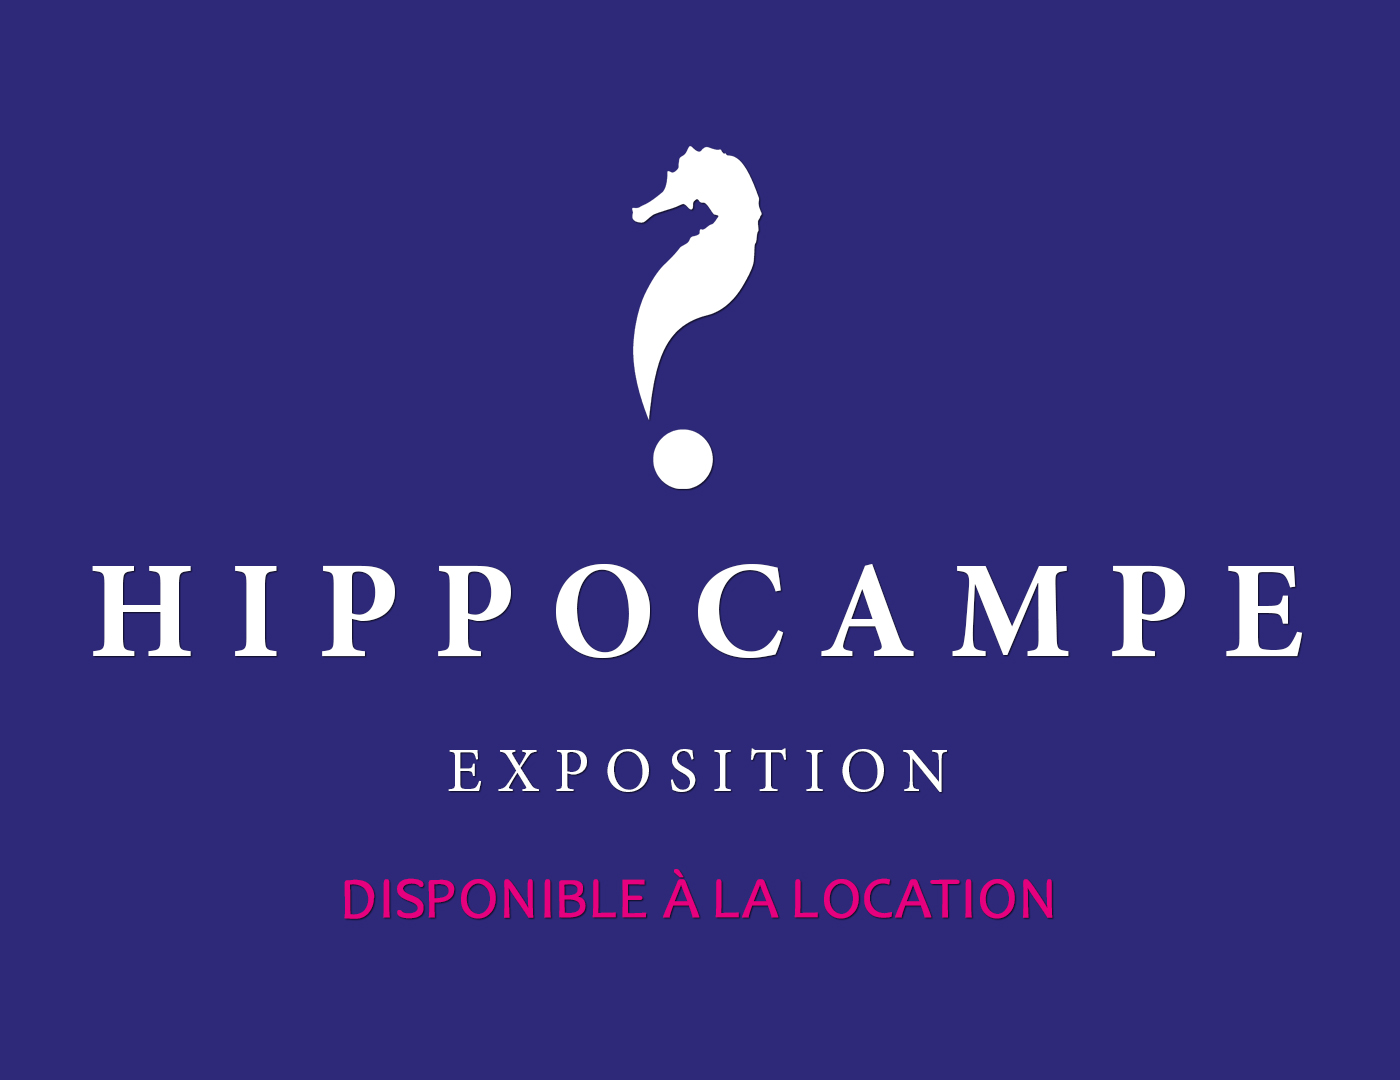 image accueil exposition hippocampe